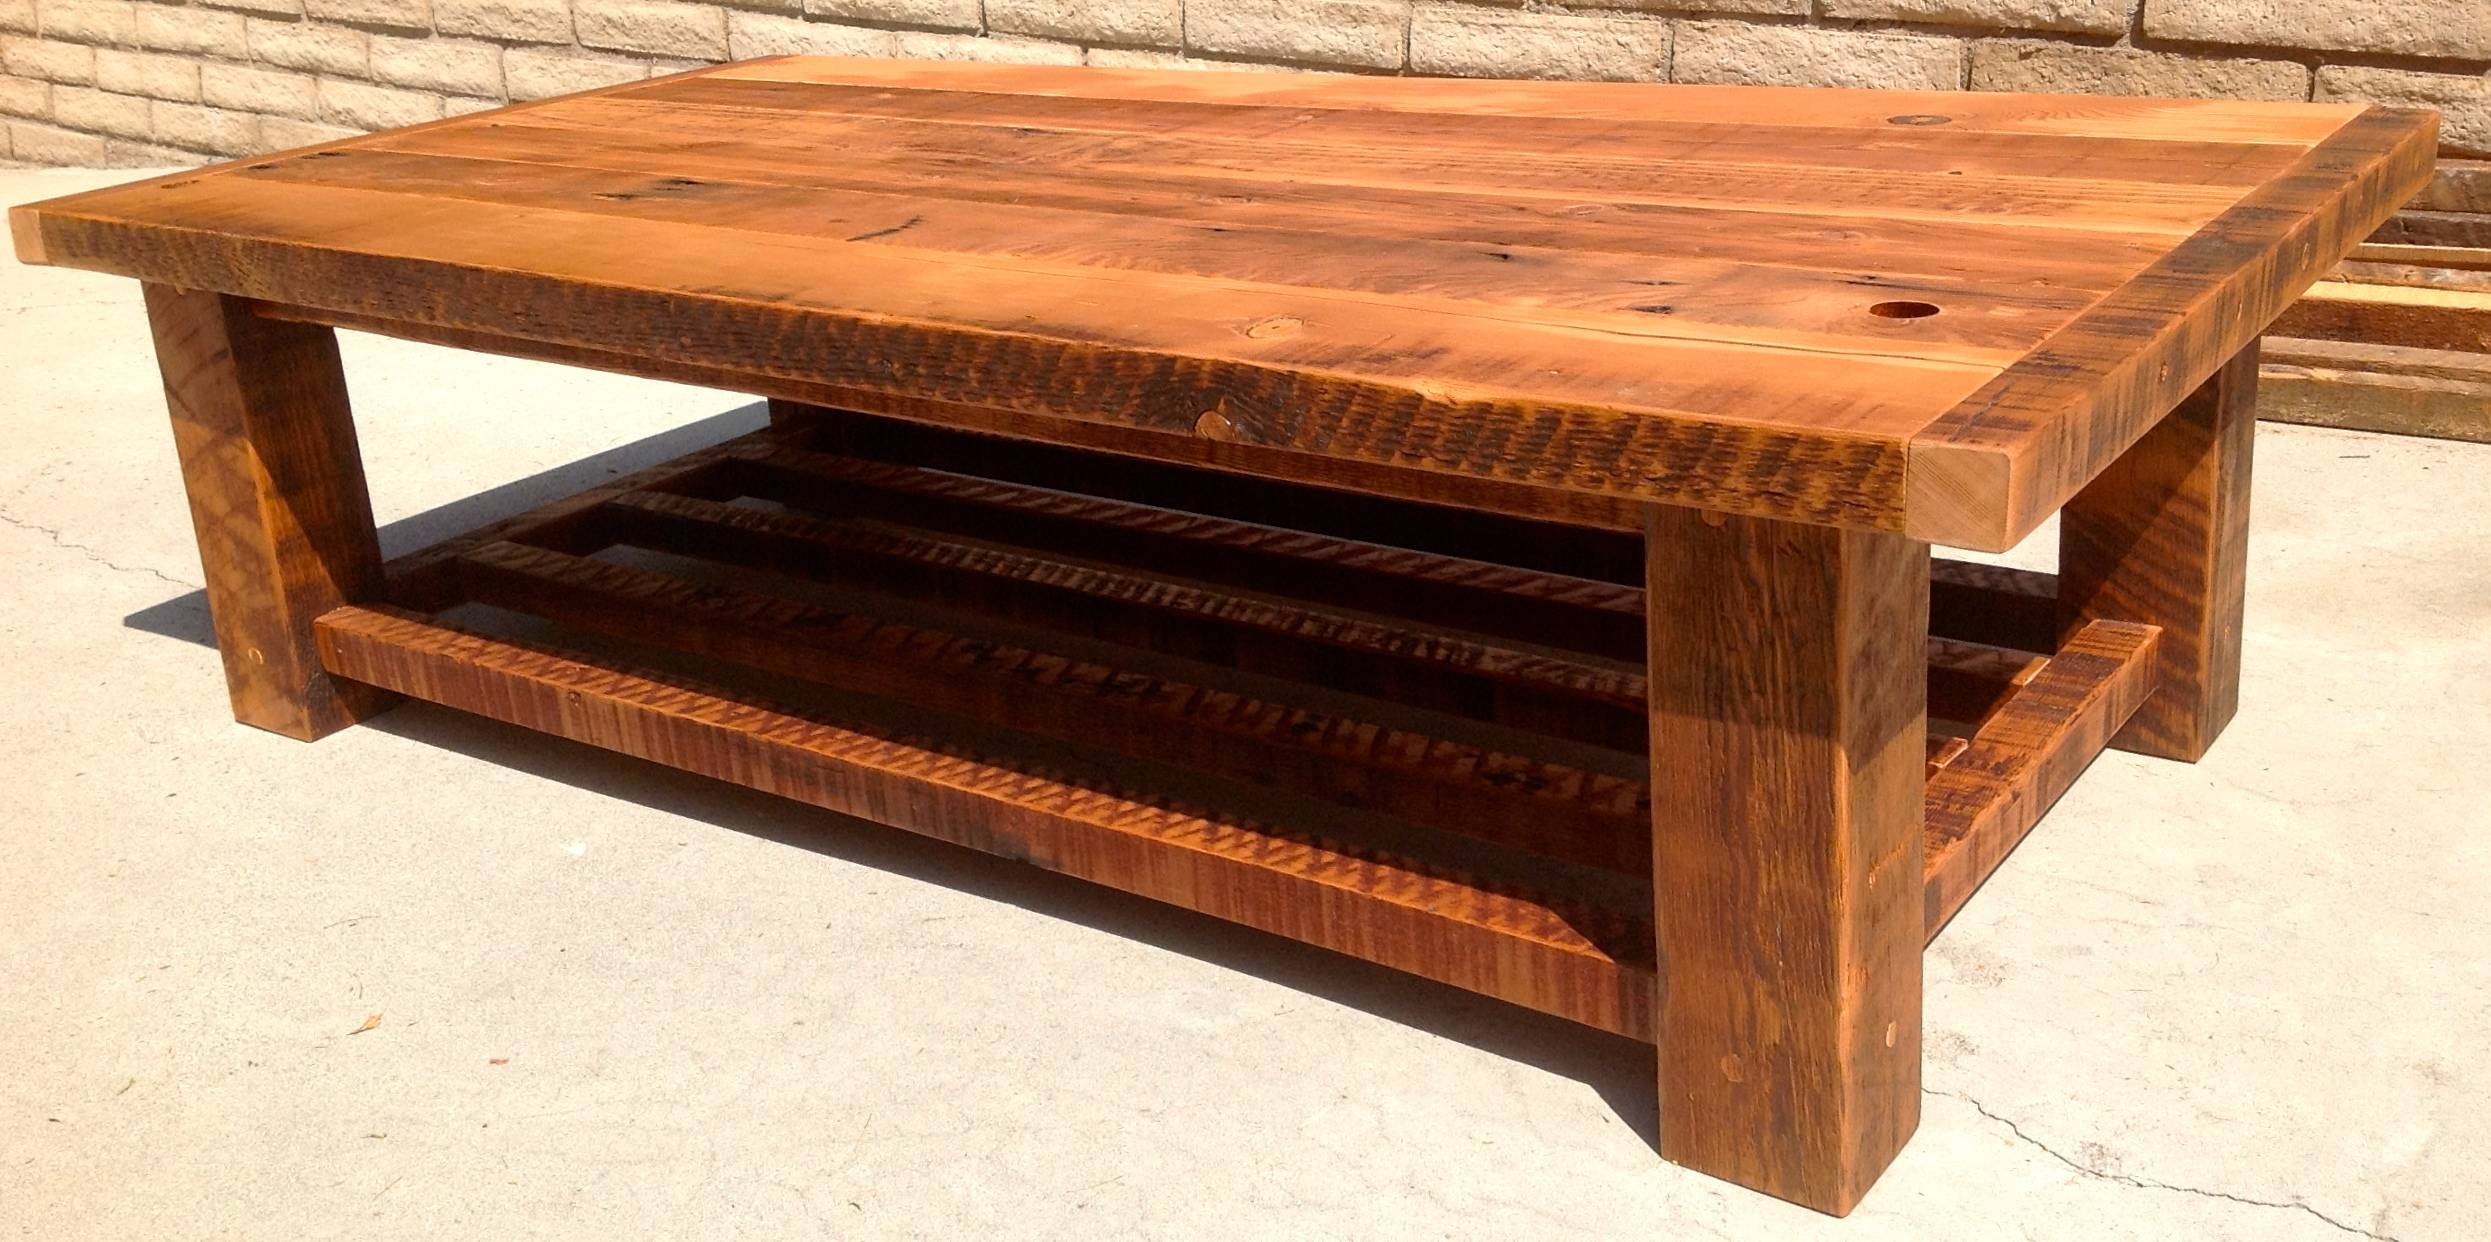 Wooden Coffee Tables. 44 Stylish Midcentury Modern Coffee Tables with regard to Wooden Coffee Tables (Image 15 of 15)